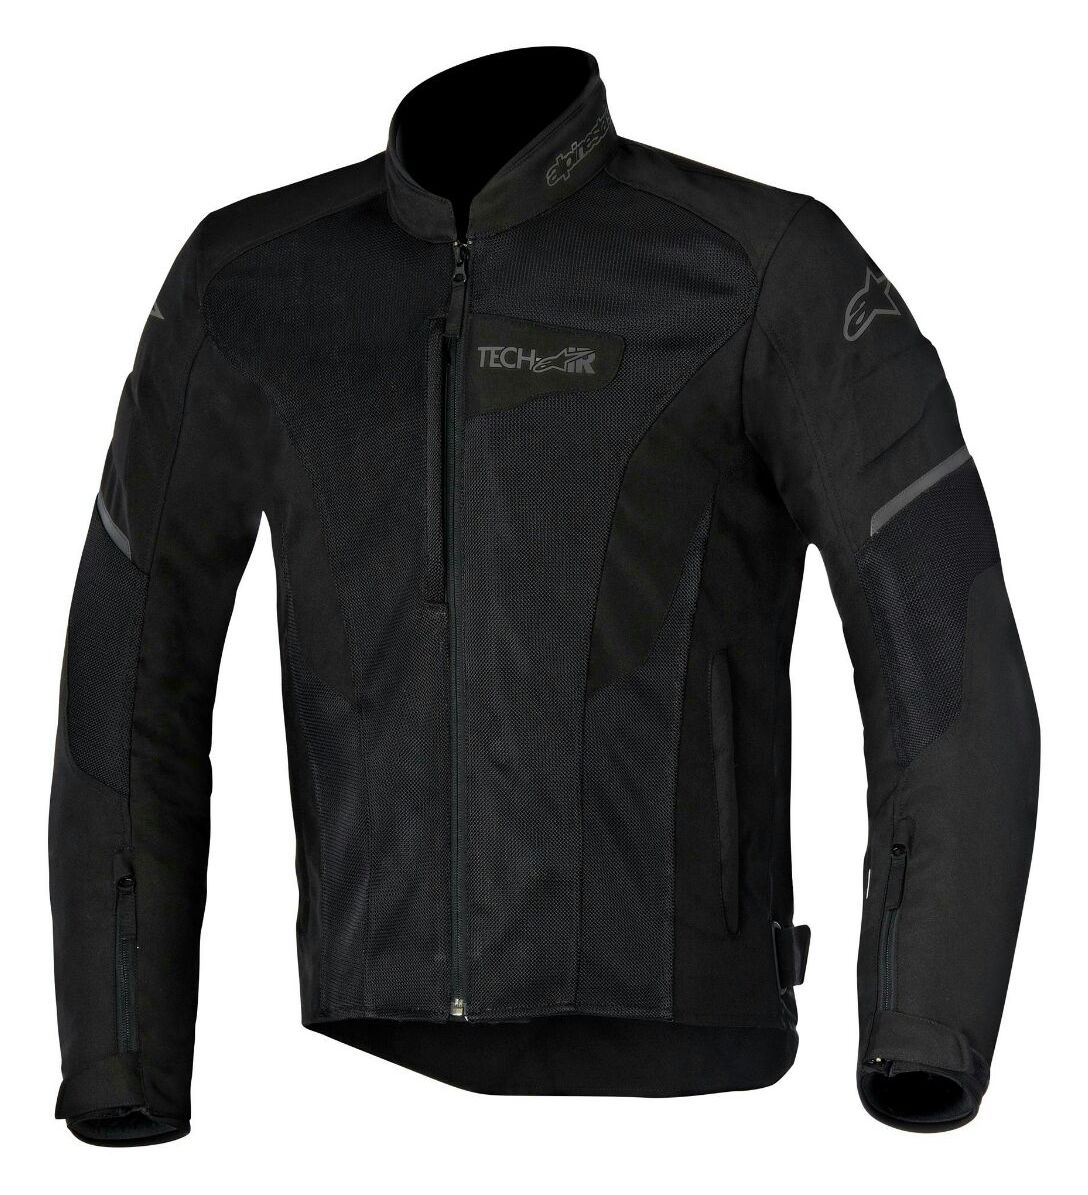 alpinestars TECH-AIR VIPER LIGHT JACKET